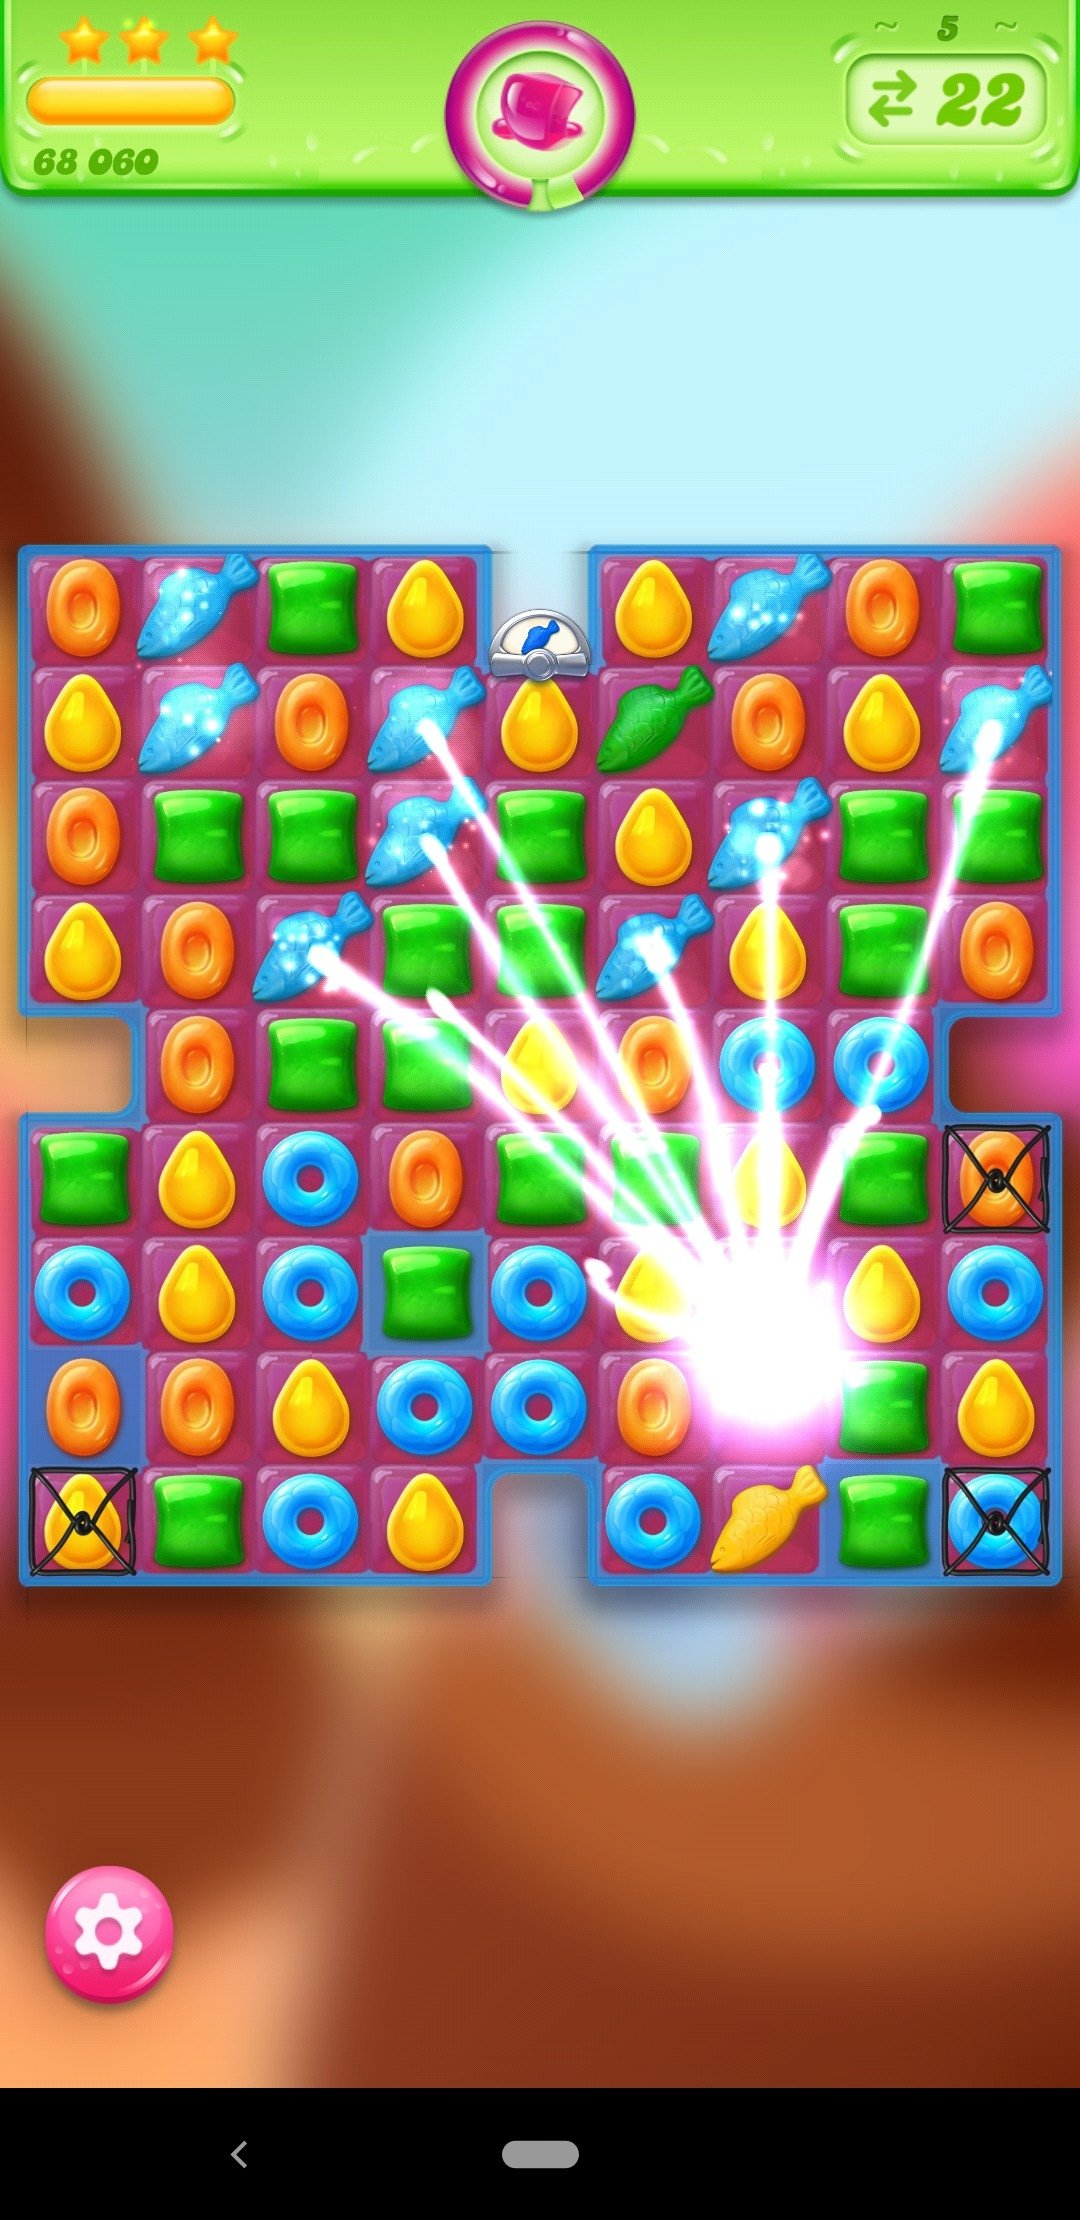 Candy Crush Jelly Saga Android image 8